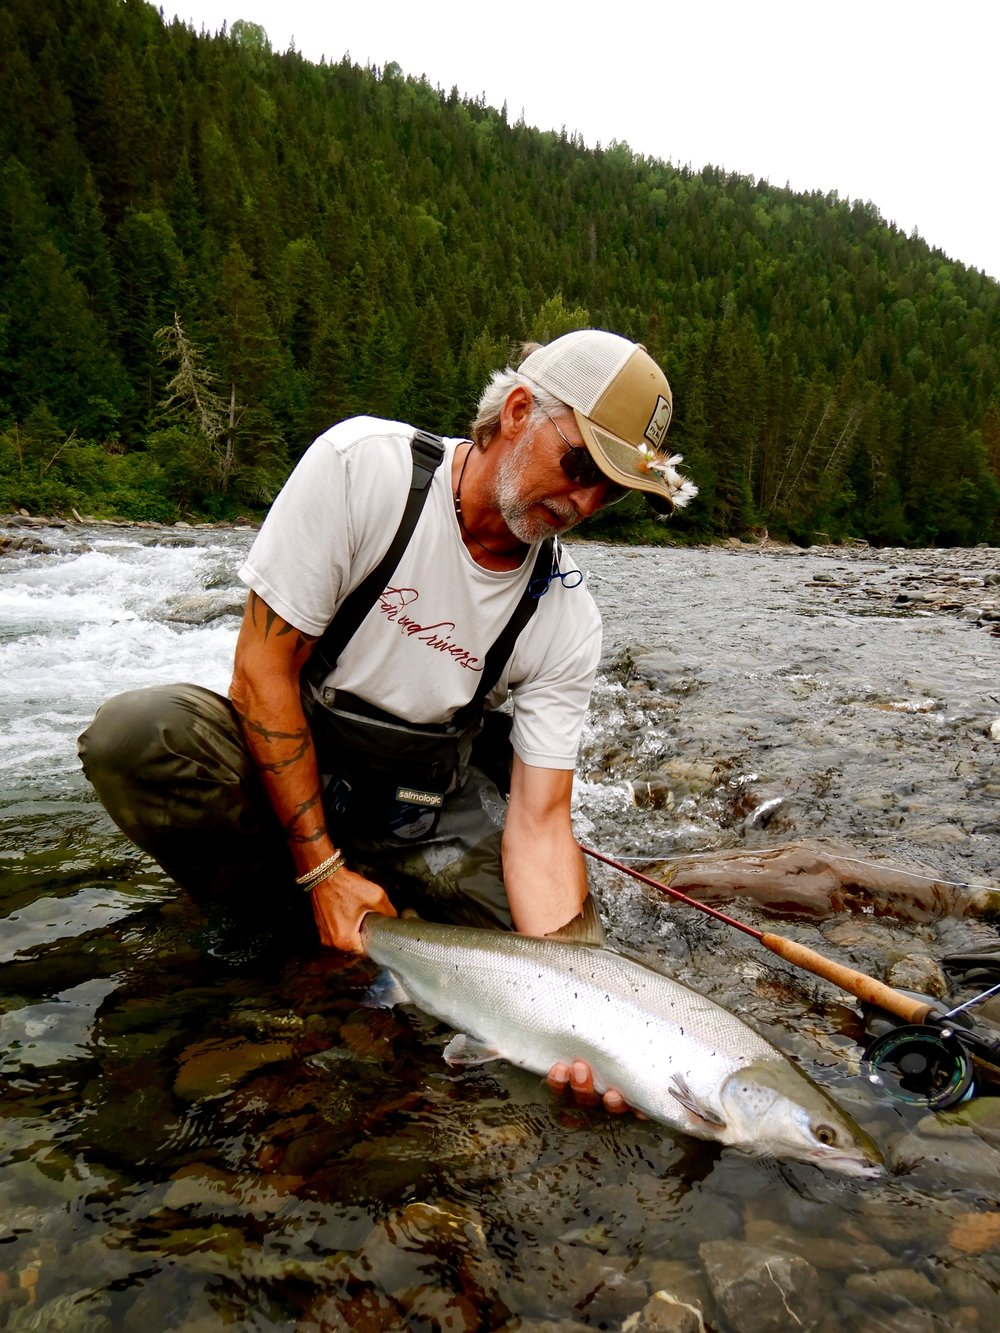 Henrik Mortensen releases his first Cascapedia salmon the season. Nice one Henrik!